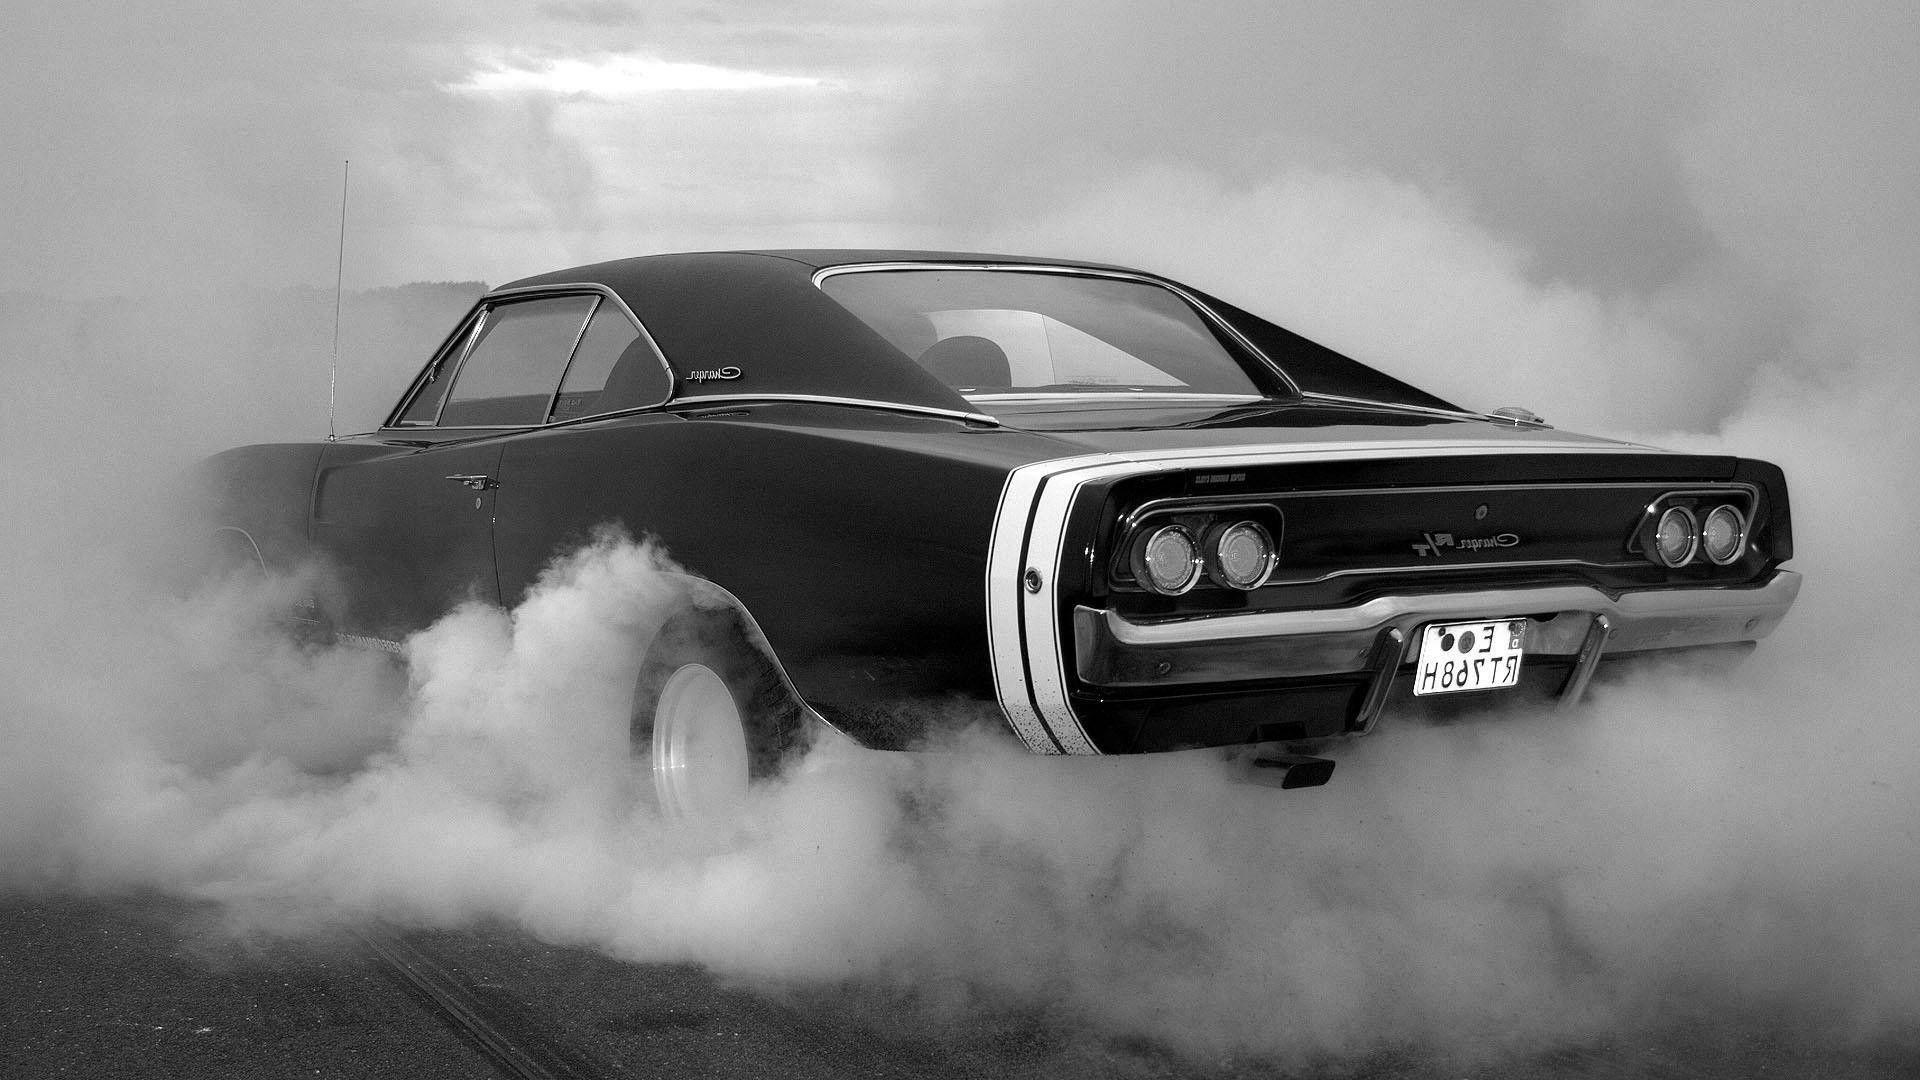 Muscle Cars HD Wallpapers - Wallpaper Cave Hd Wallpapers 1920x1080 Cars